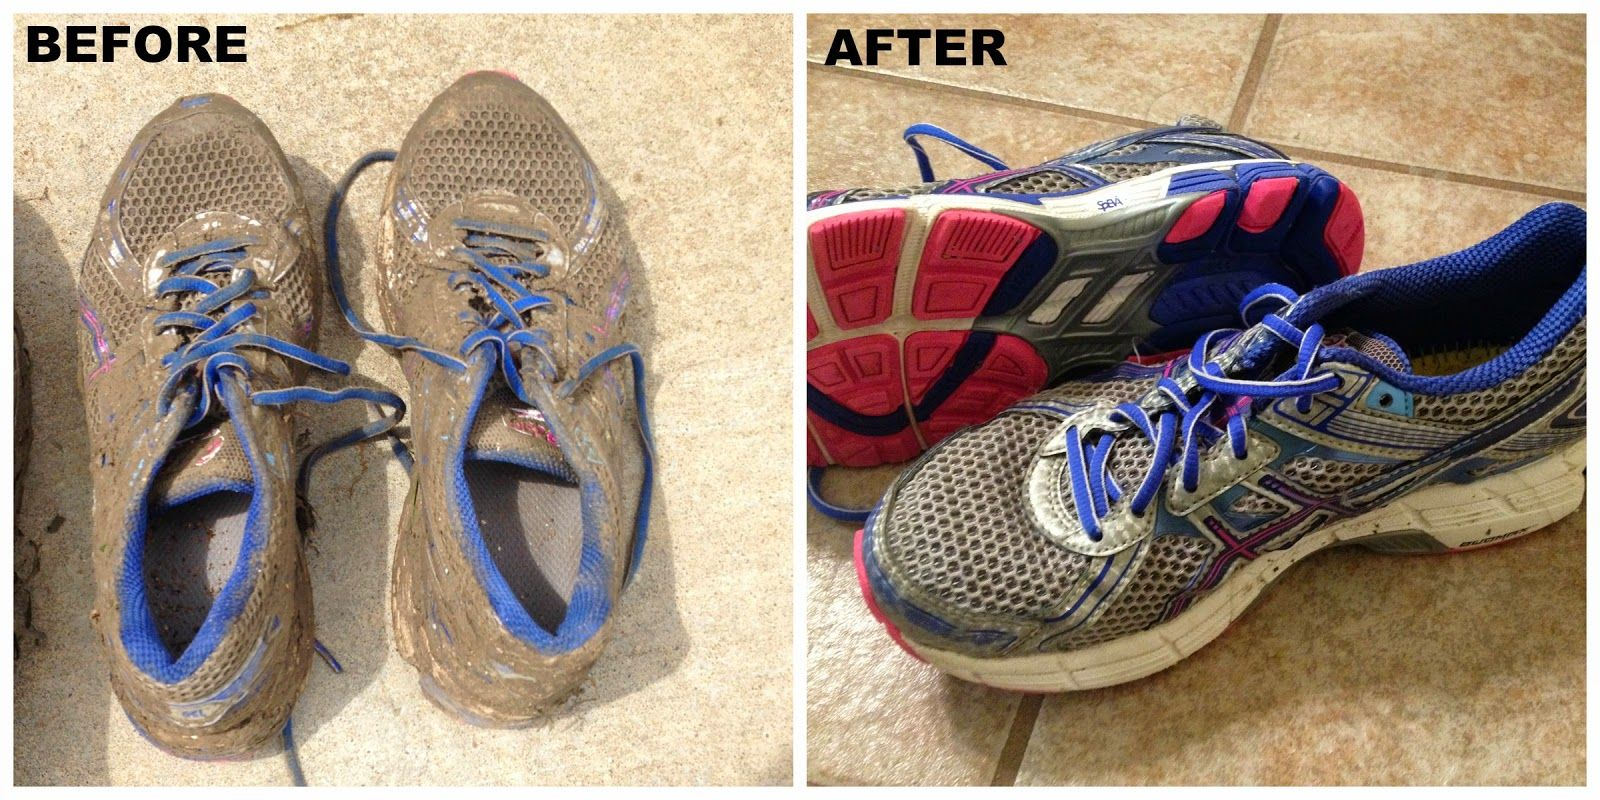 How to Clean Your Shoes After a Mud Run So They Look Like